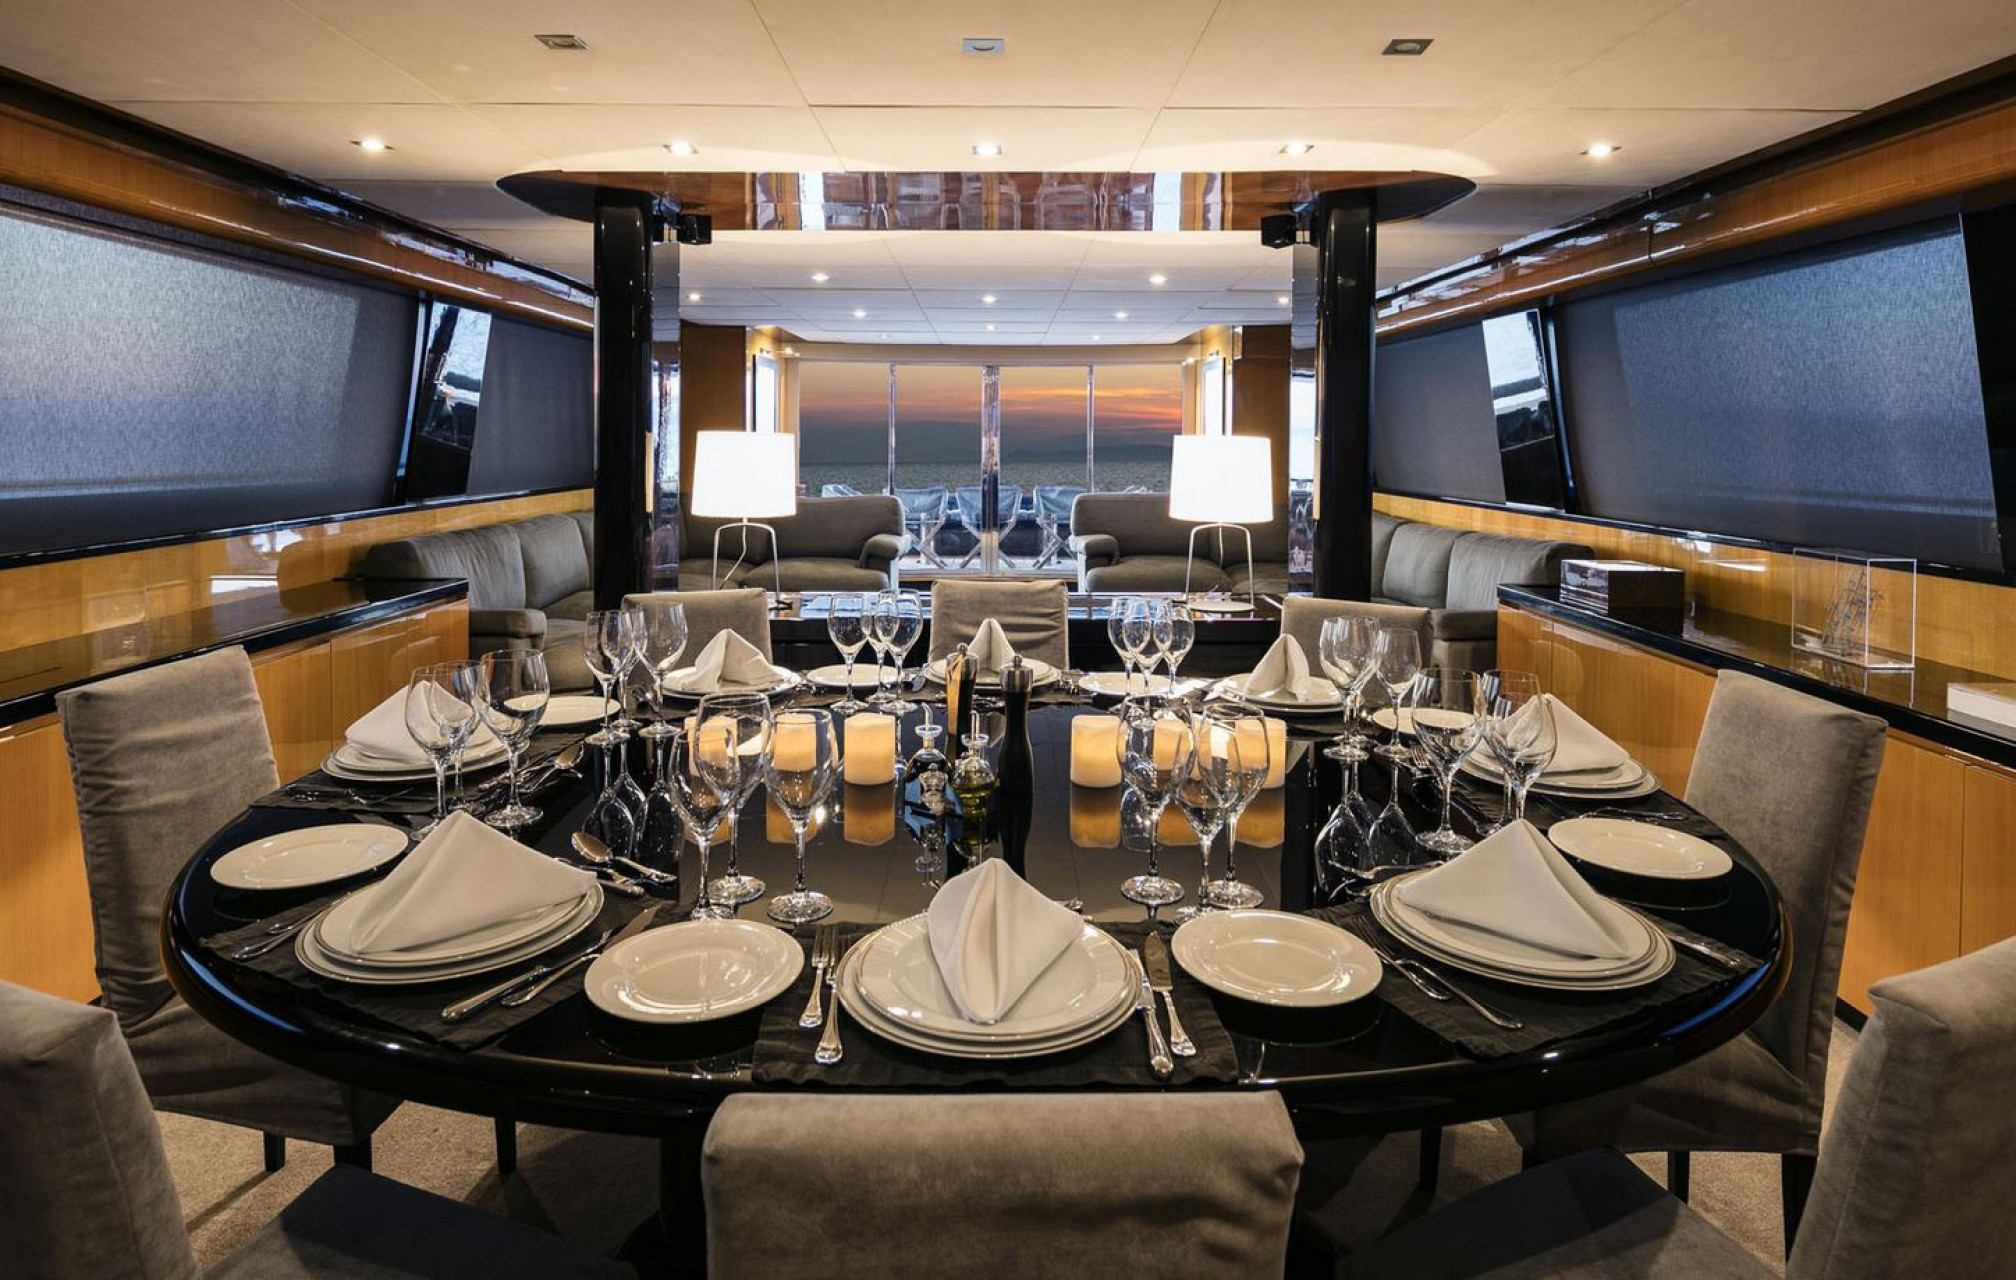 Rental yacht Can't Remember dining room